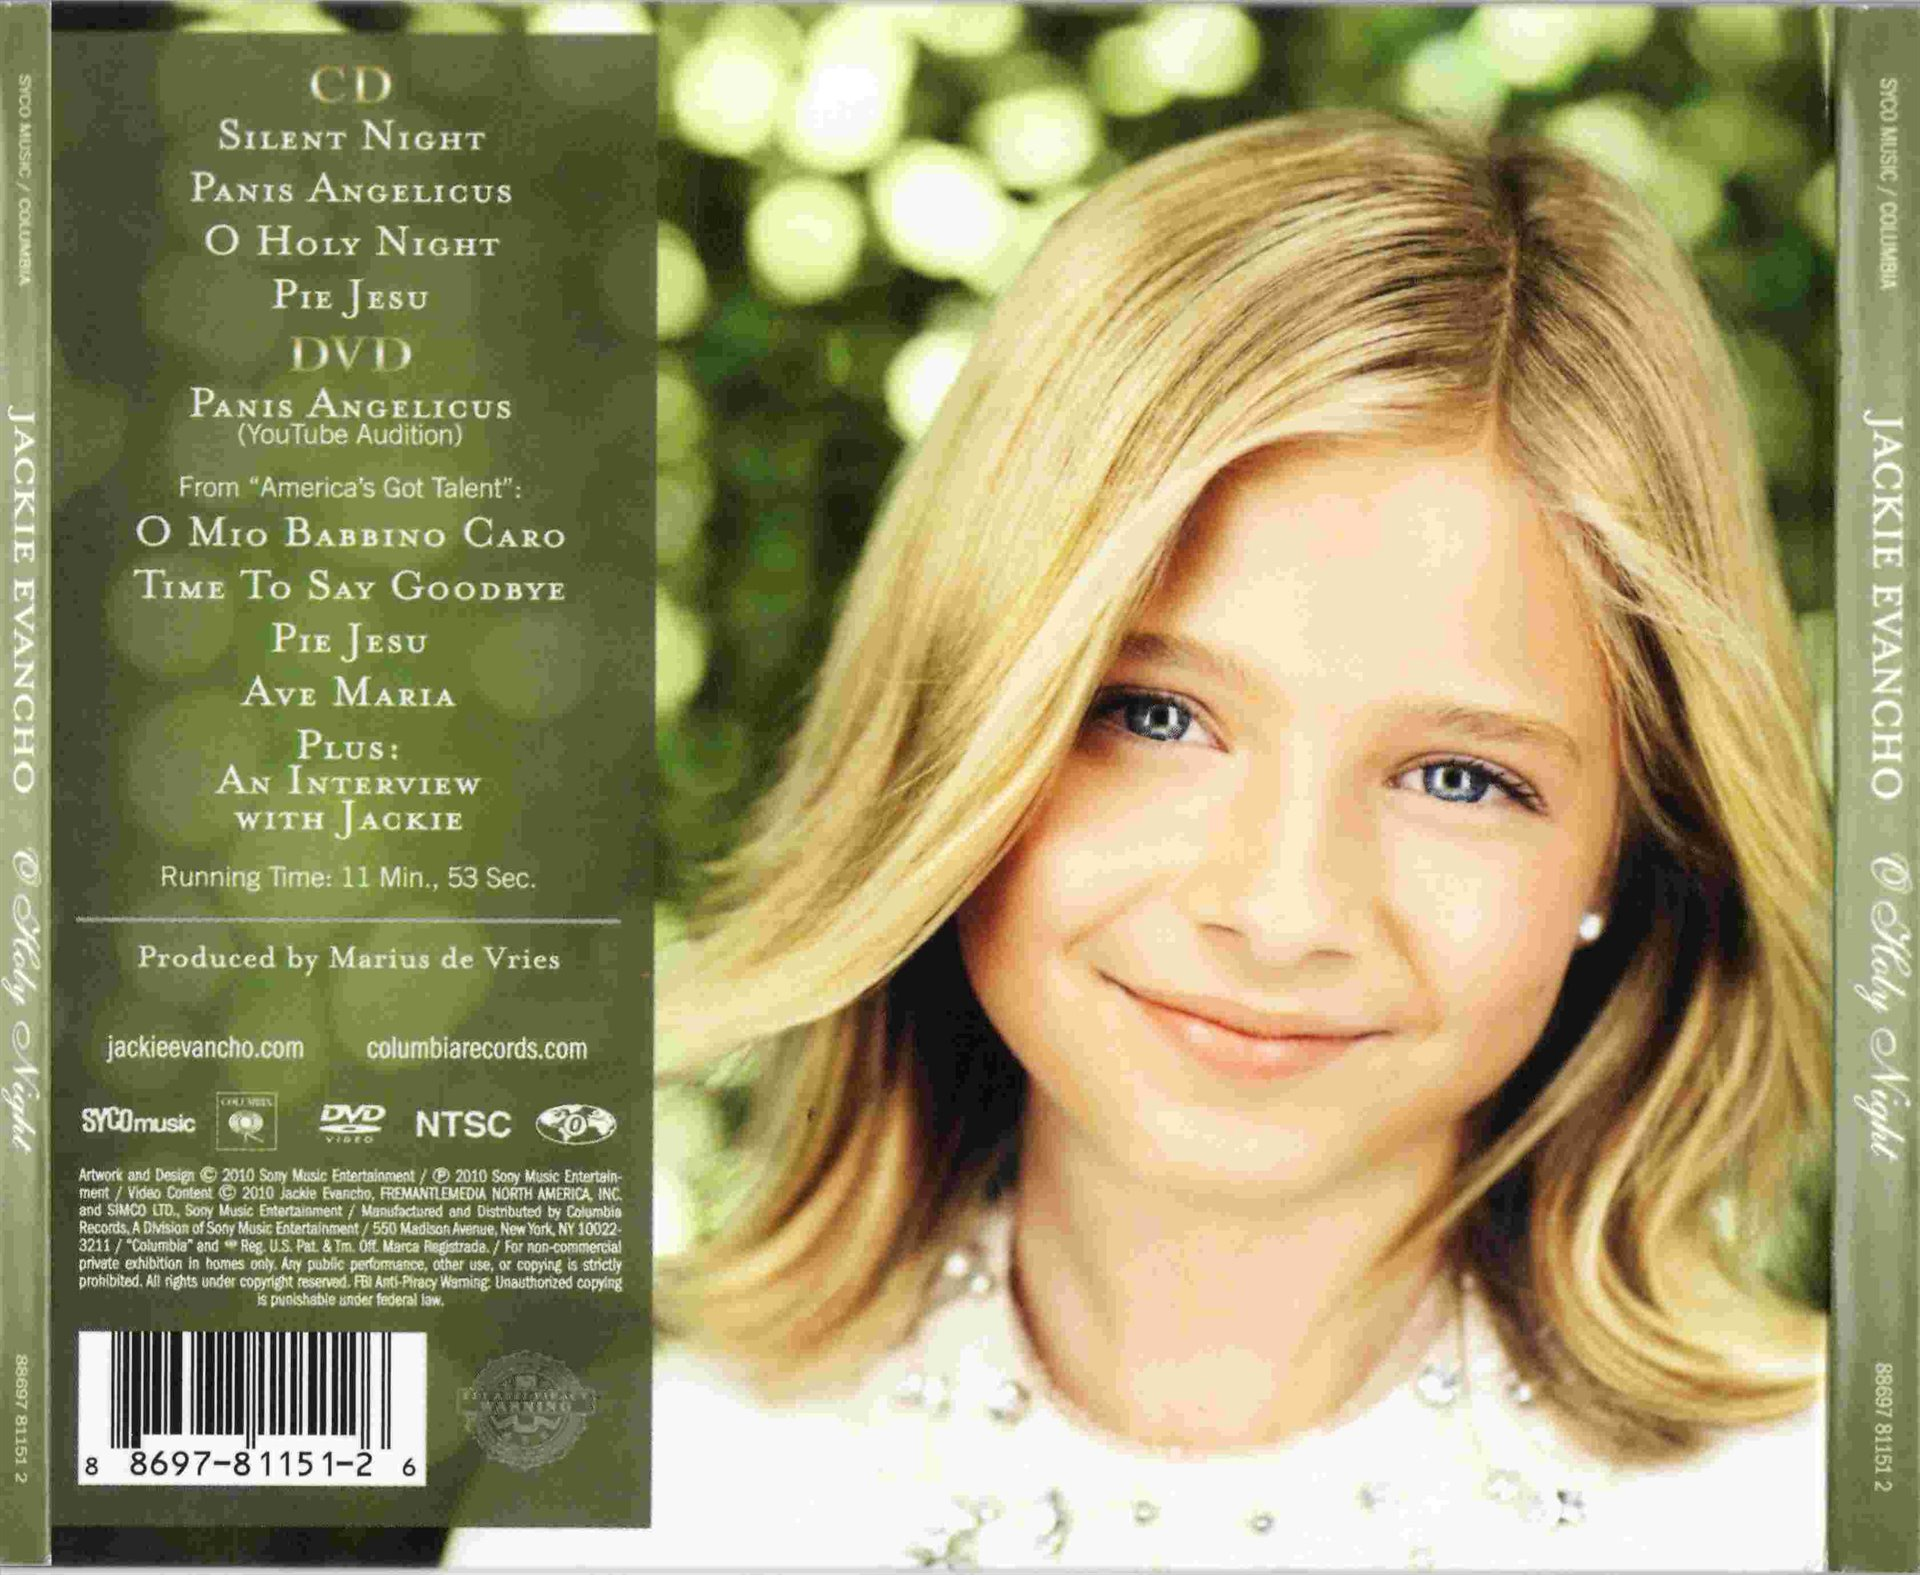 ... Jackie Evancho-O Holy Night ... - jackie-evancho-o-holy-night-d224b2a0-c8ea-498c-91f9-43392d2bb8bd